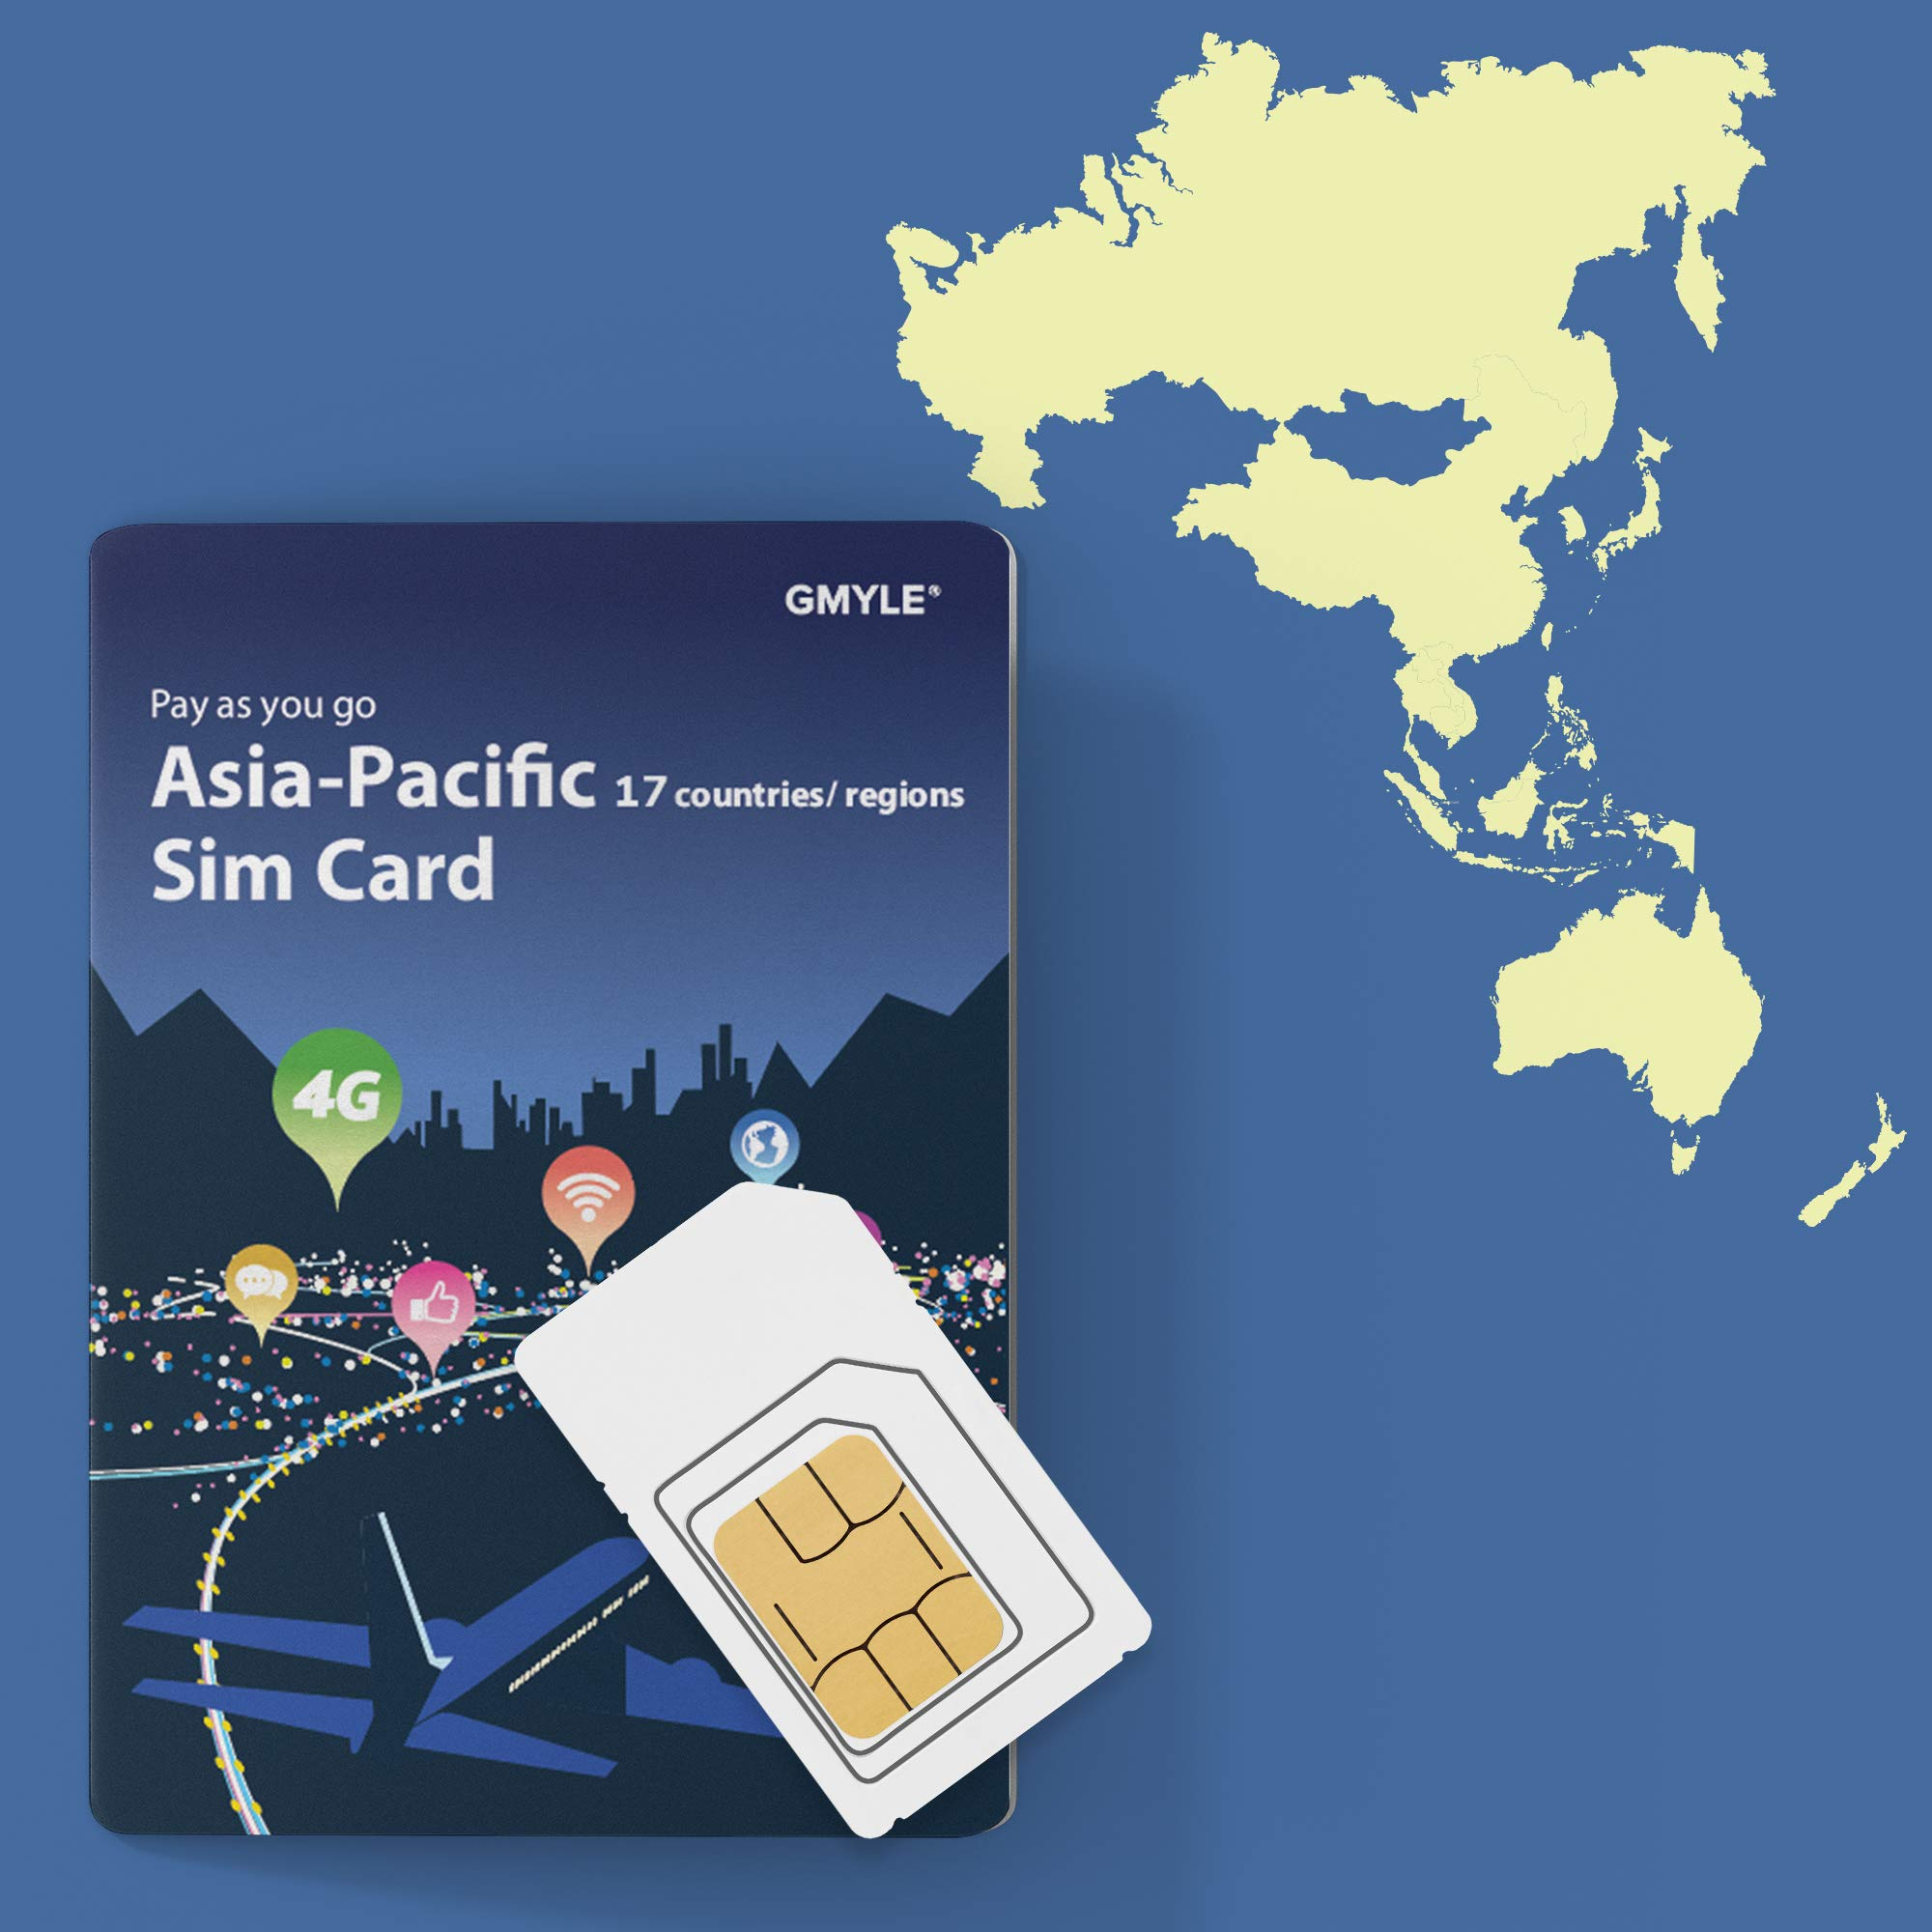 GMYLE Japan, China, Thailand, etc, Prepaid SIM Card, 5GB 14 Days Asia Pacific 17 Countries 4G LTE 3G Travel Data, Top up Anytime and Anywhere by GMYLE